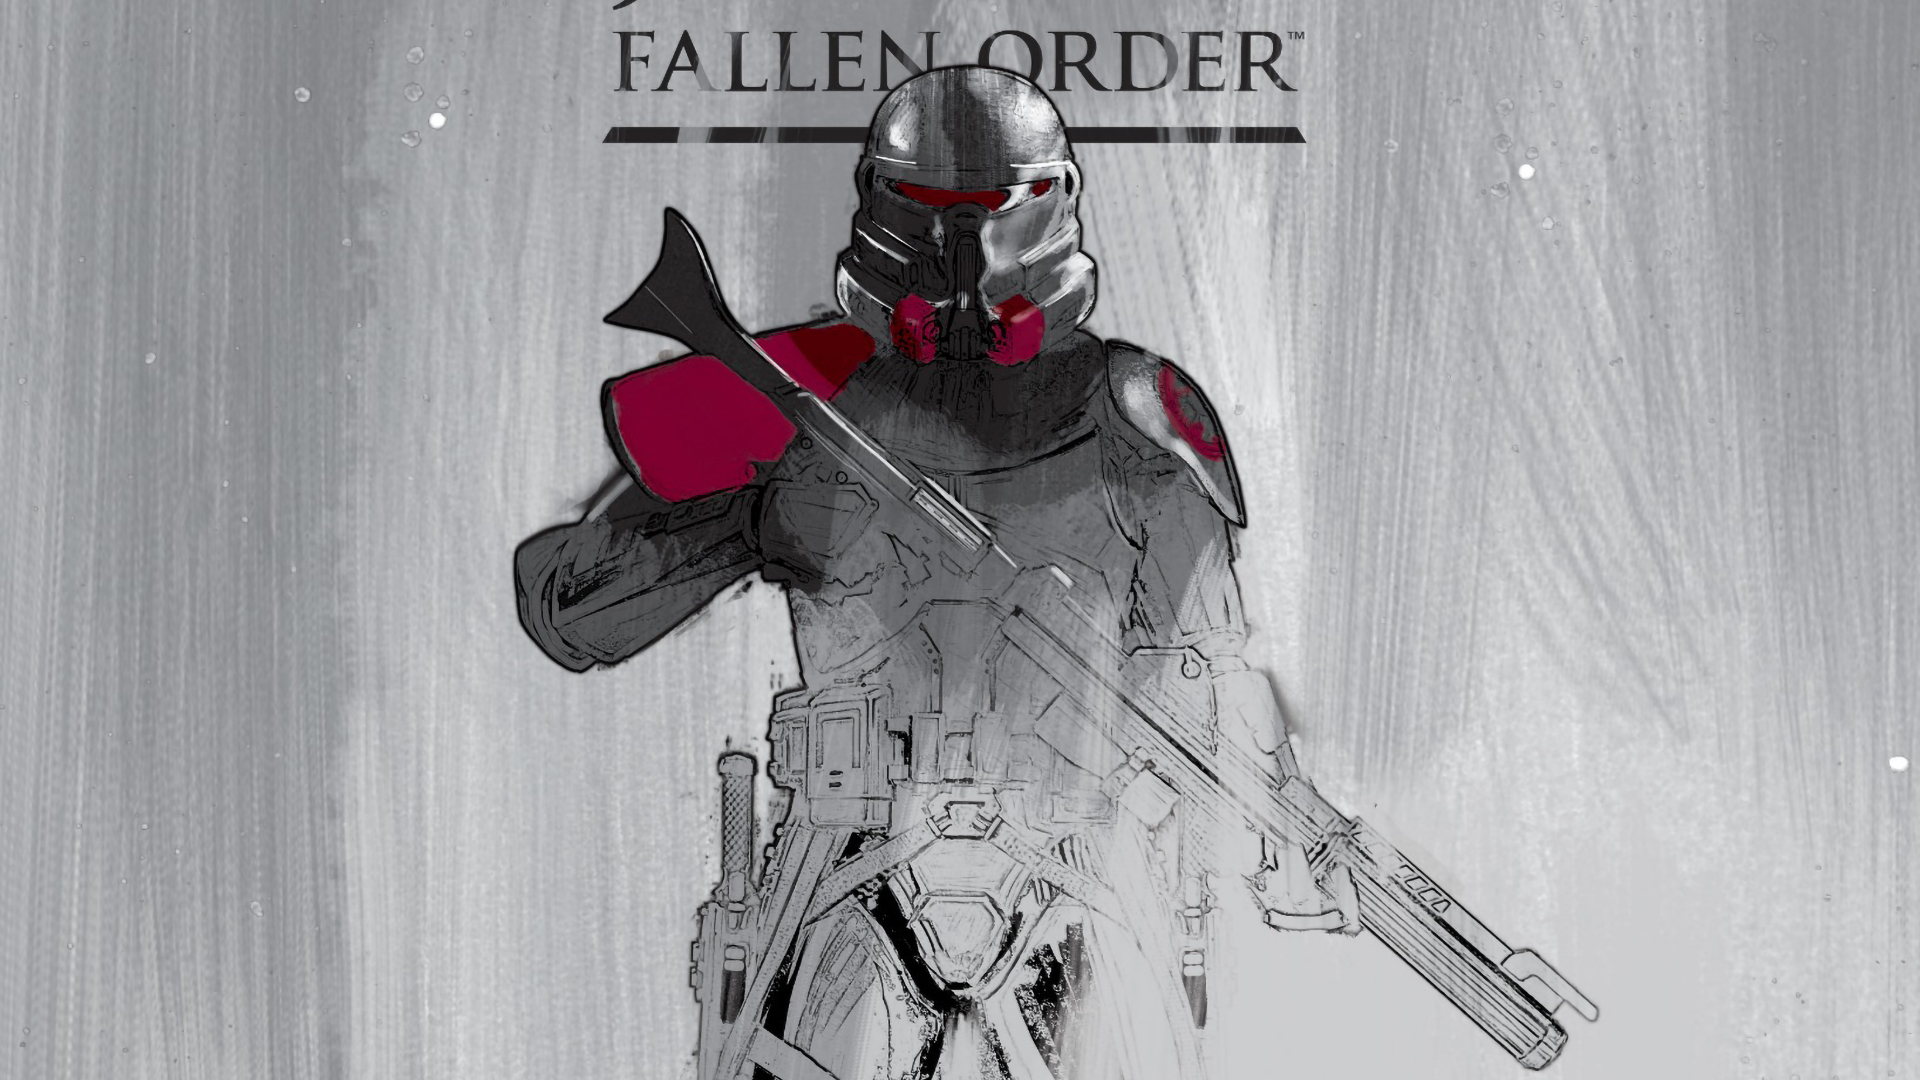 1920x1080 Purge Trooper Star Wars Jedi Fallen Order Art 1080p Laptop Full Hd Wallpaper Hd Games 4k Wallpapers Images Photos And Background